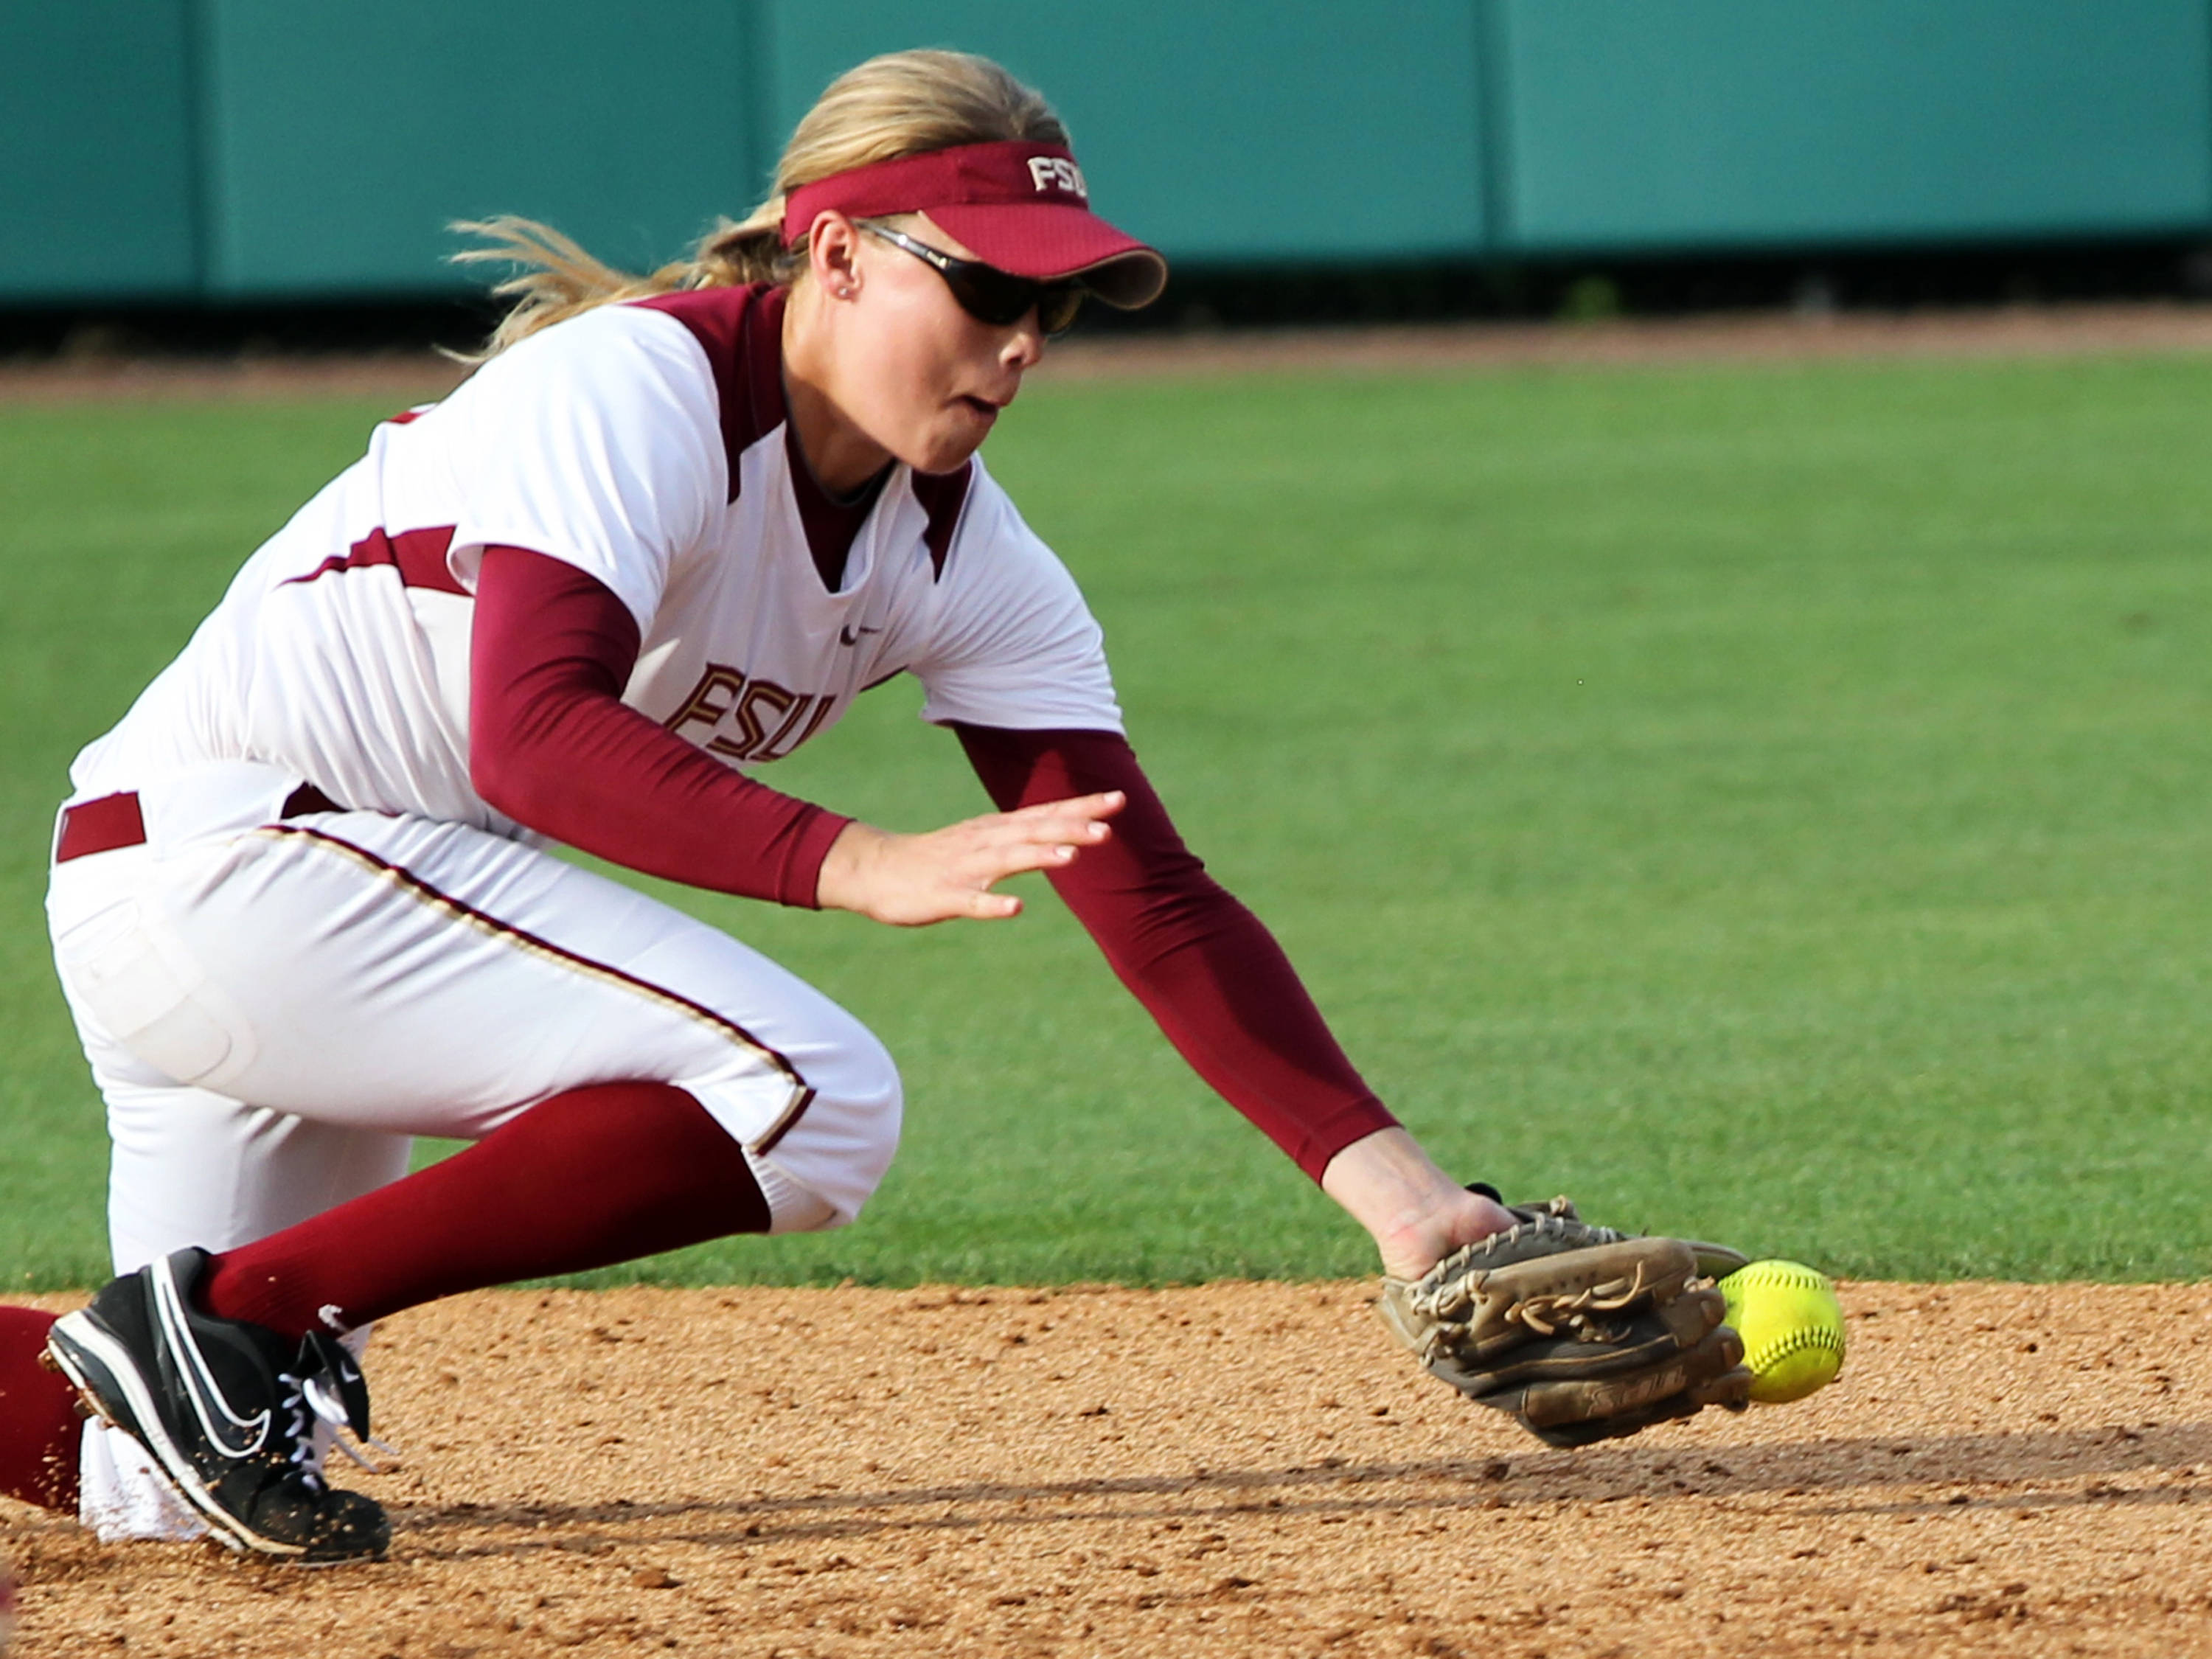 Kelly Hensley, FSU VS NC State, ACC Championship Finals, Tallahassee, FL,  05/11/13 . (Photo by Steve Musco)